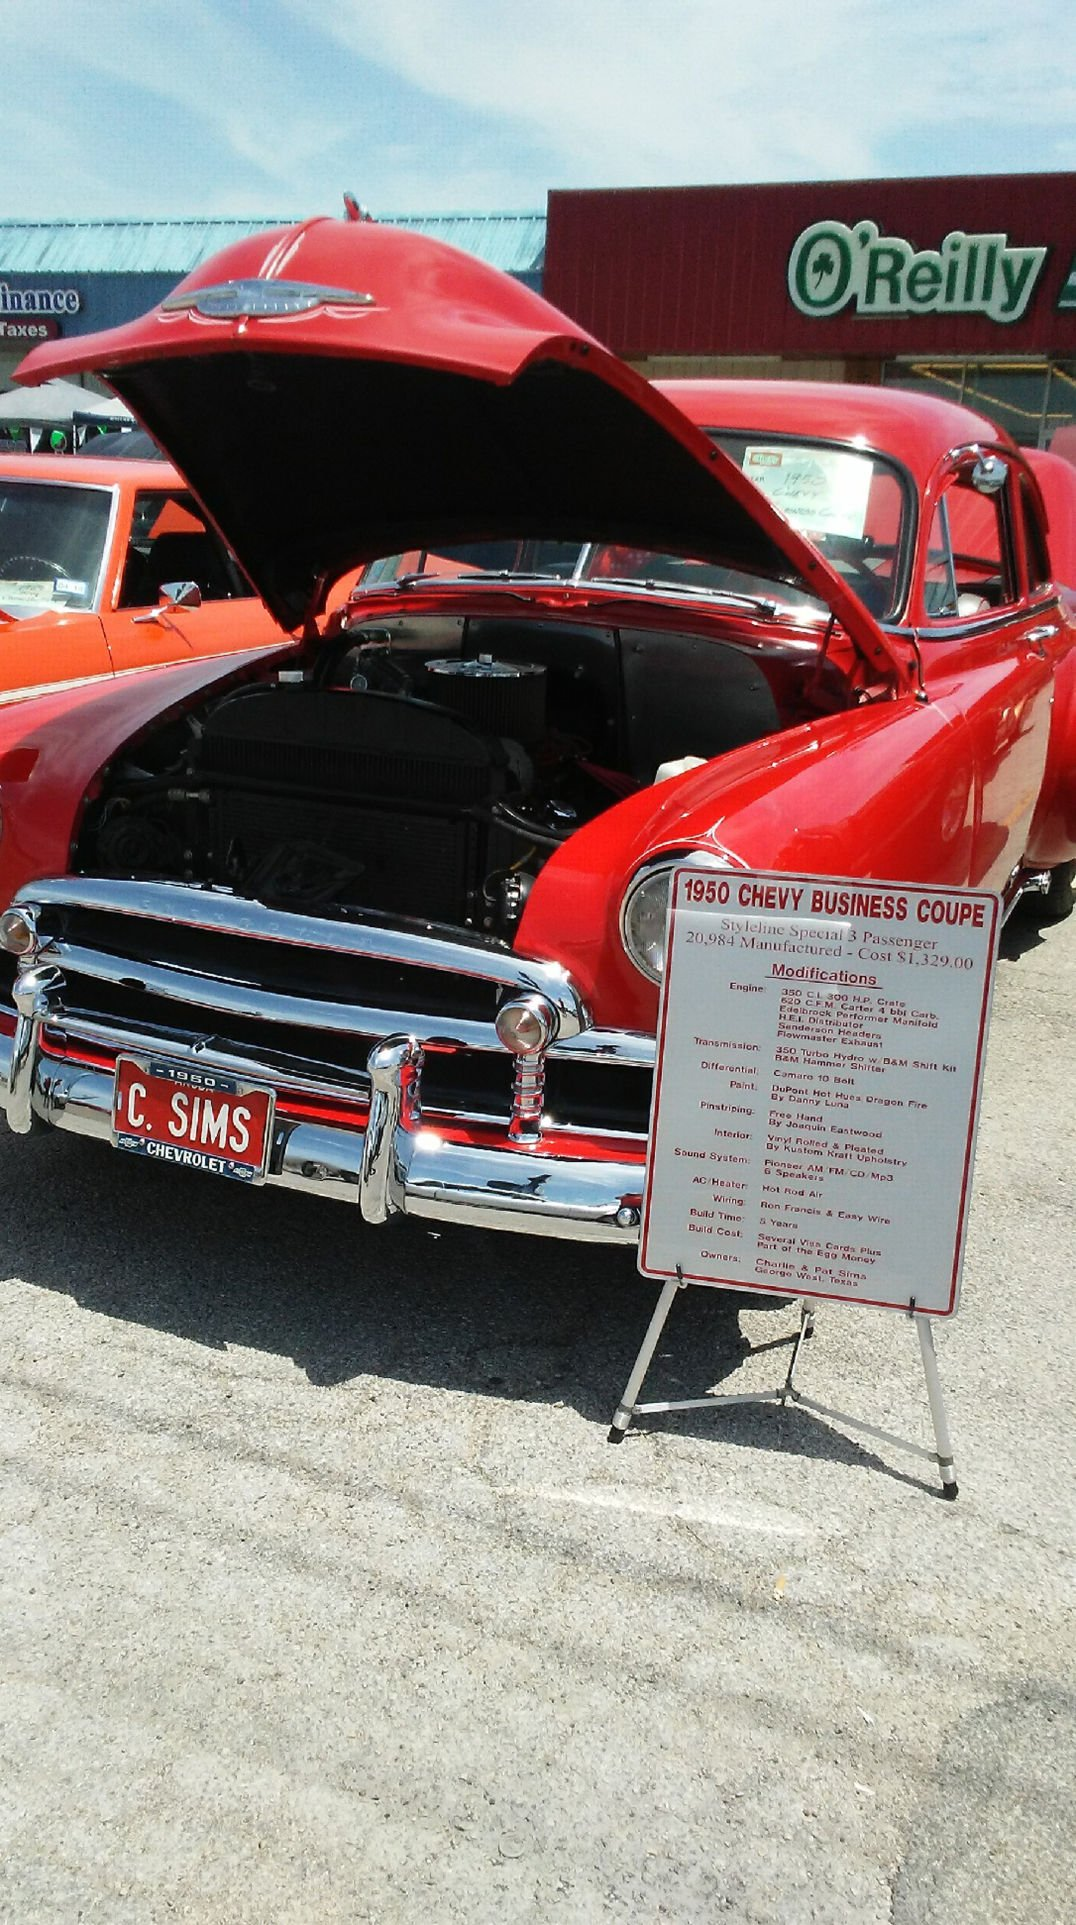 Crowds Pack Parking Lot For OReilly Car Show News Mysoutexcom - O reilly car show